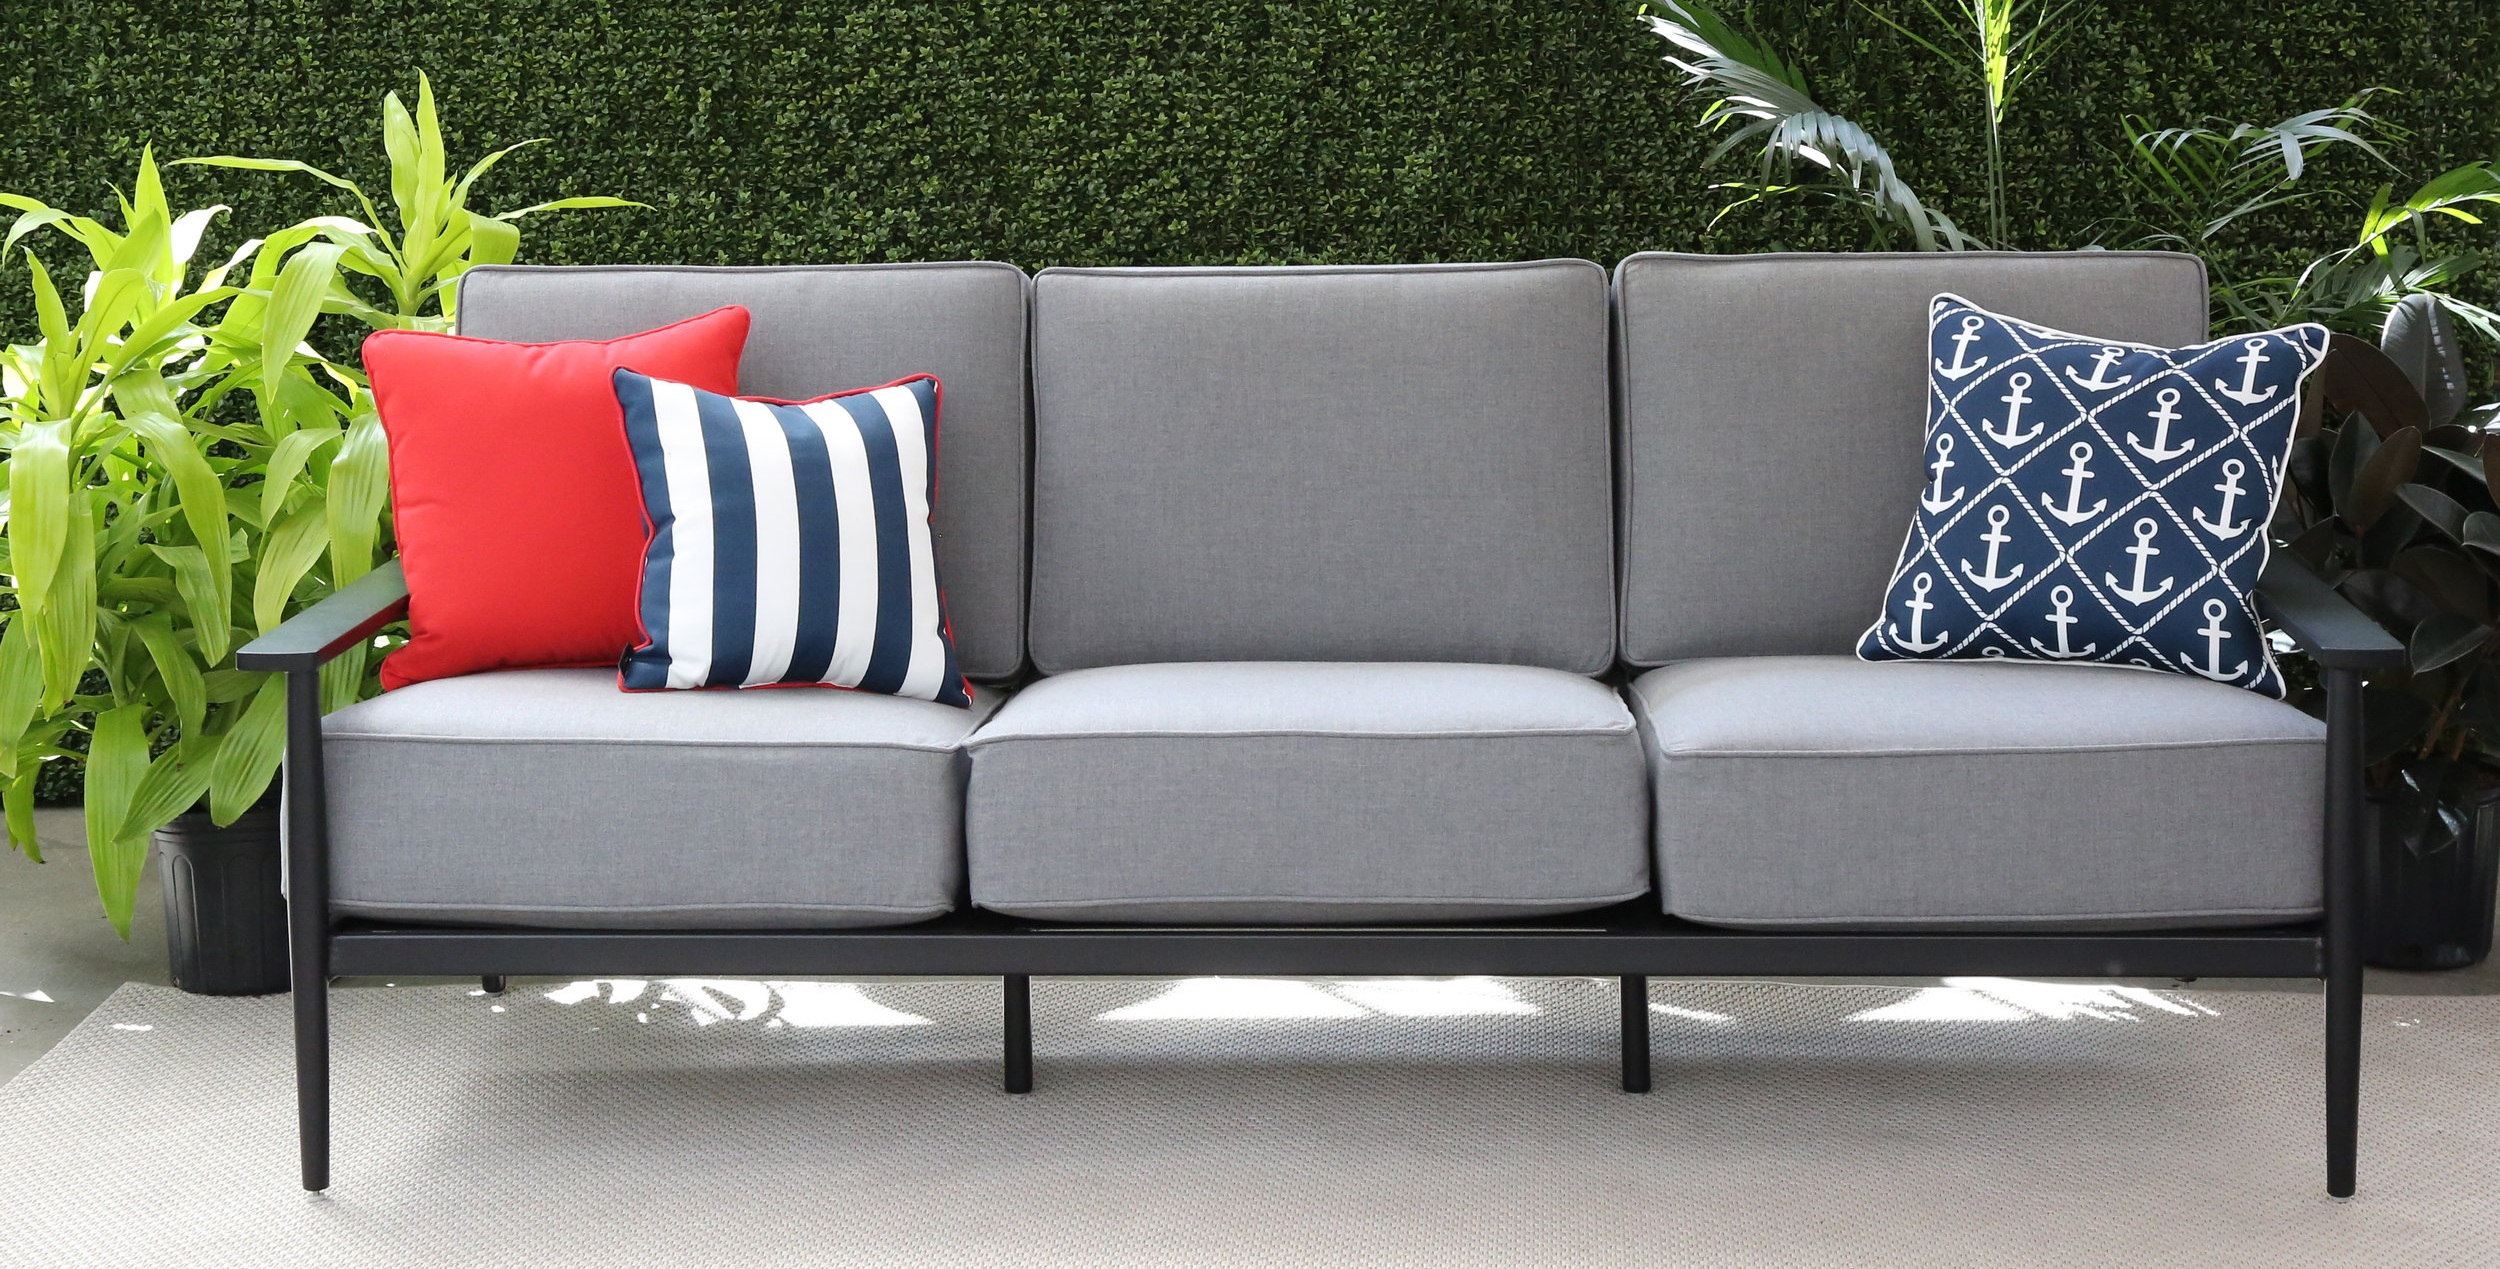 Outdoor furniture from watson's -